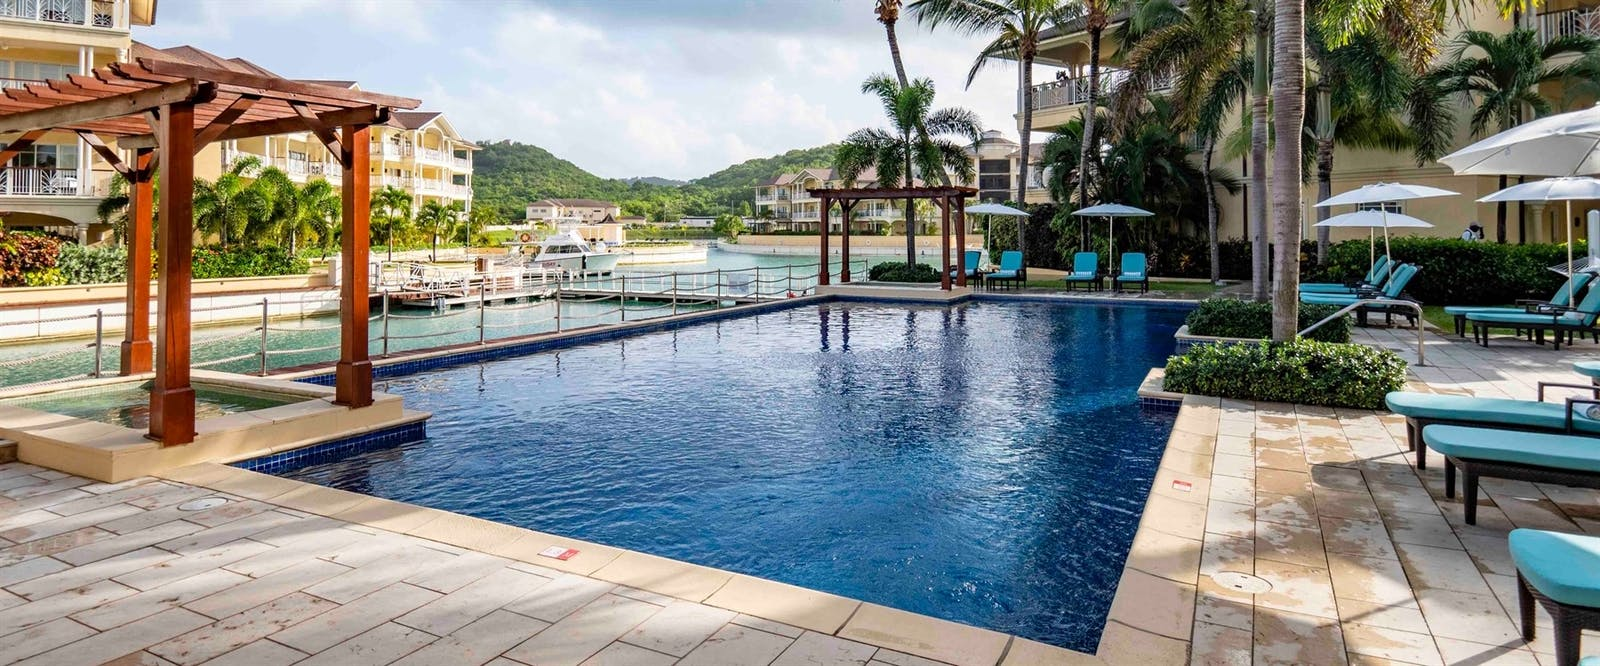 Beach Club Pool at The Landings Resort and Spa by Elegant Hotels, St Lucia